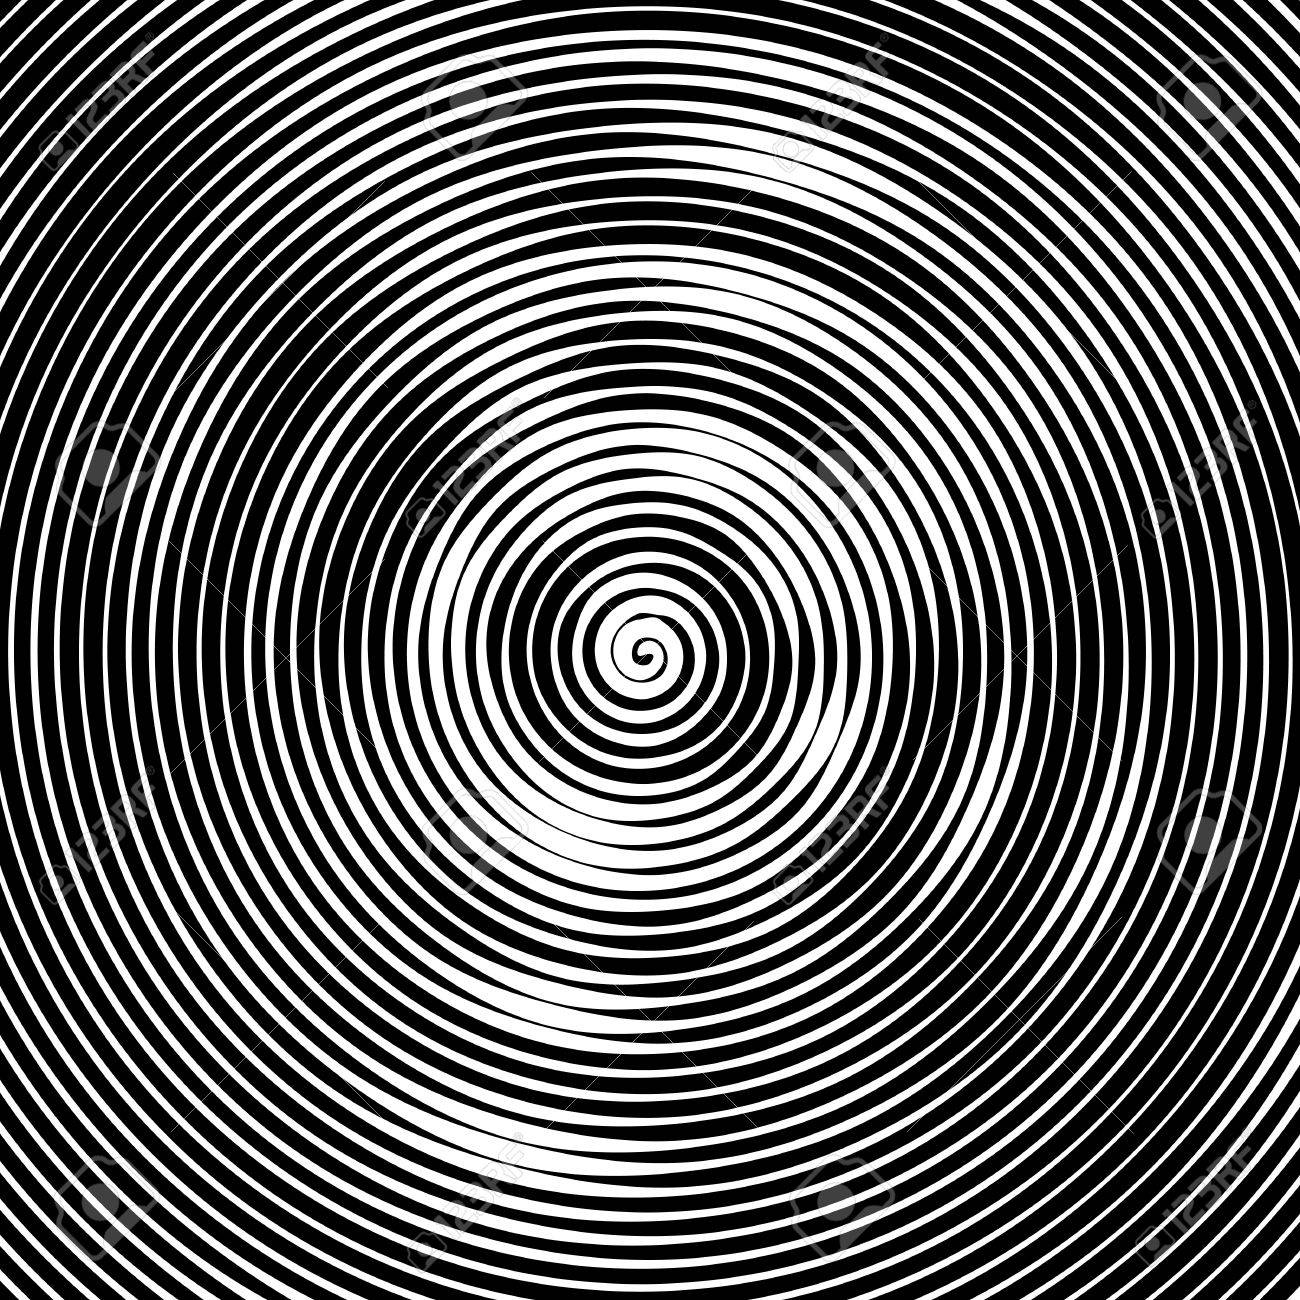 1300x1300 Abstract Vector Background. Hypnotic Spiral Line With Different